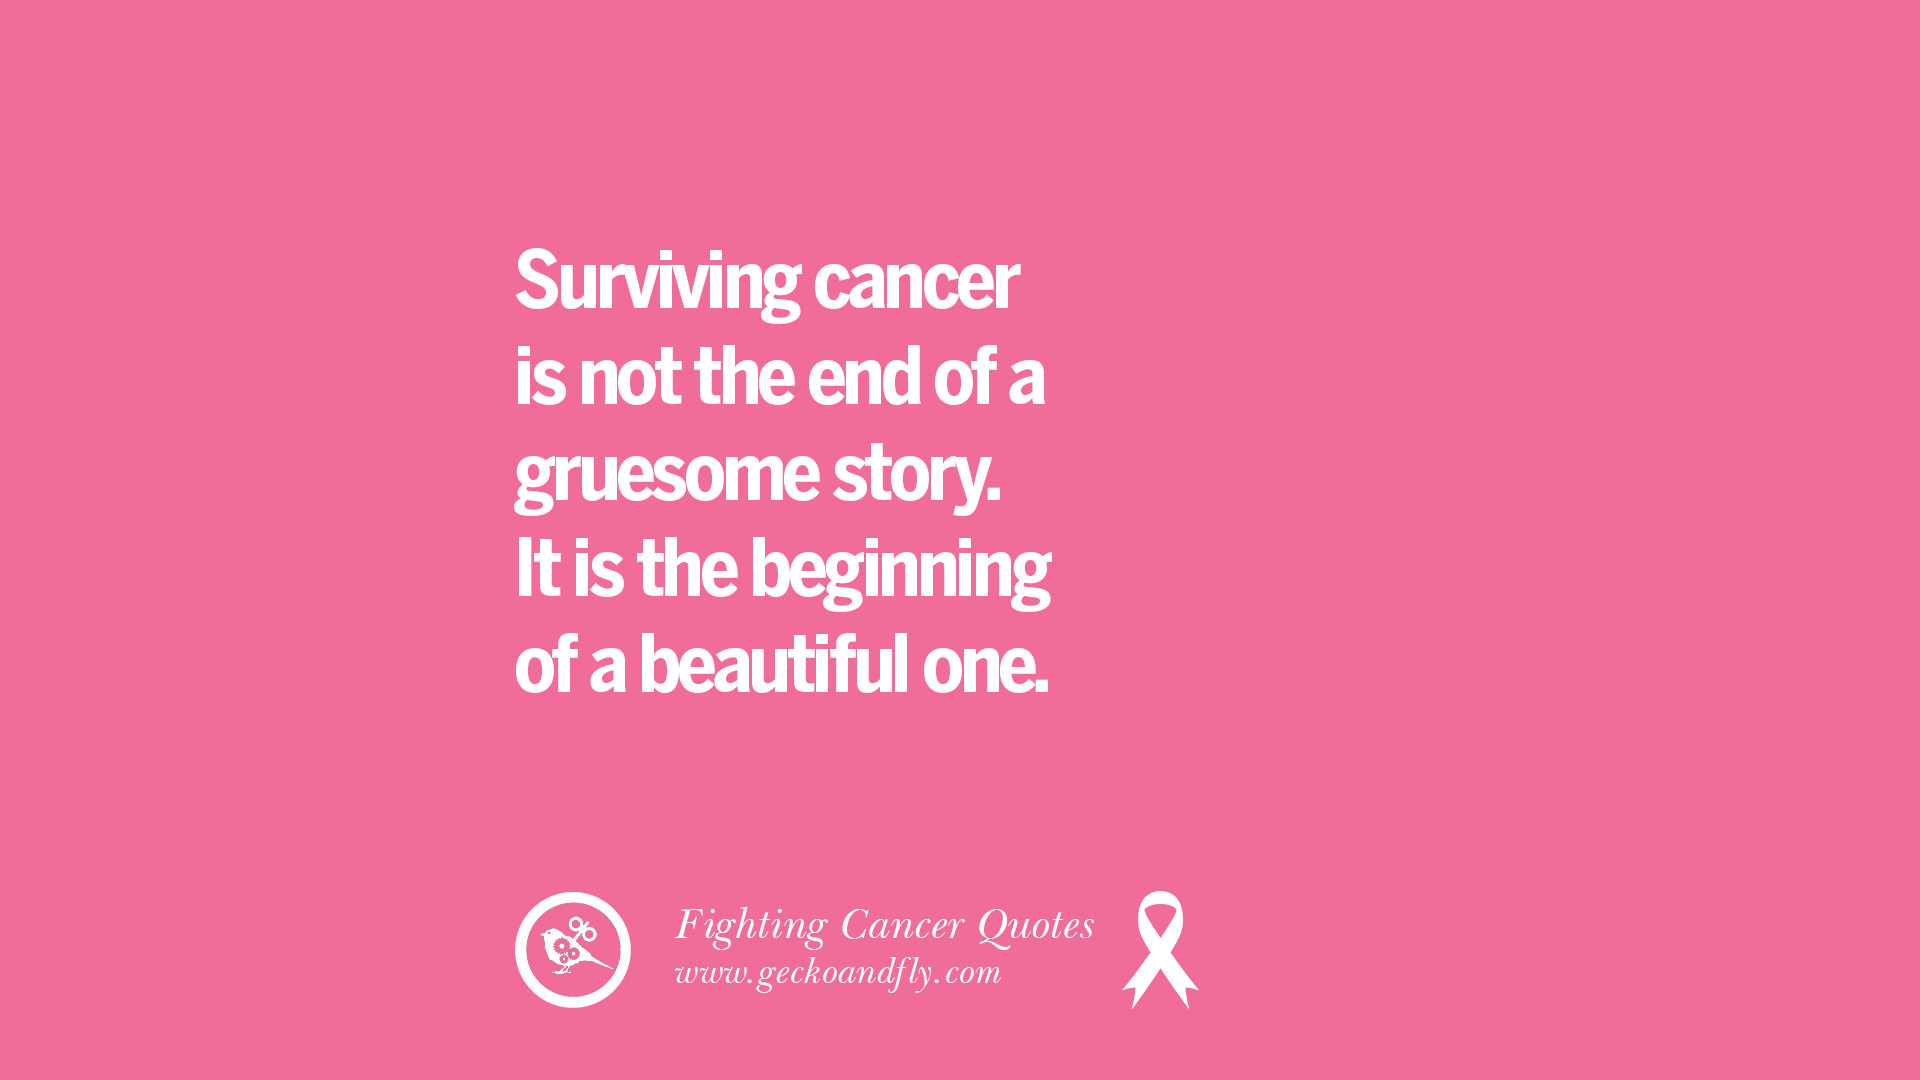 Beautiful One 30 Motivational Quotes On Fighting Cancer And Never Giving Up Hope